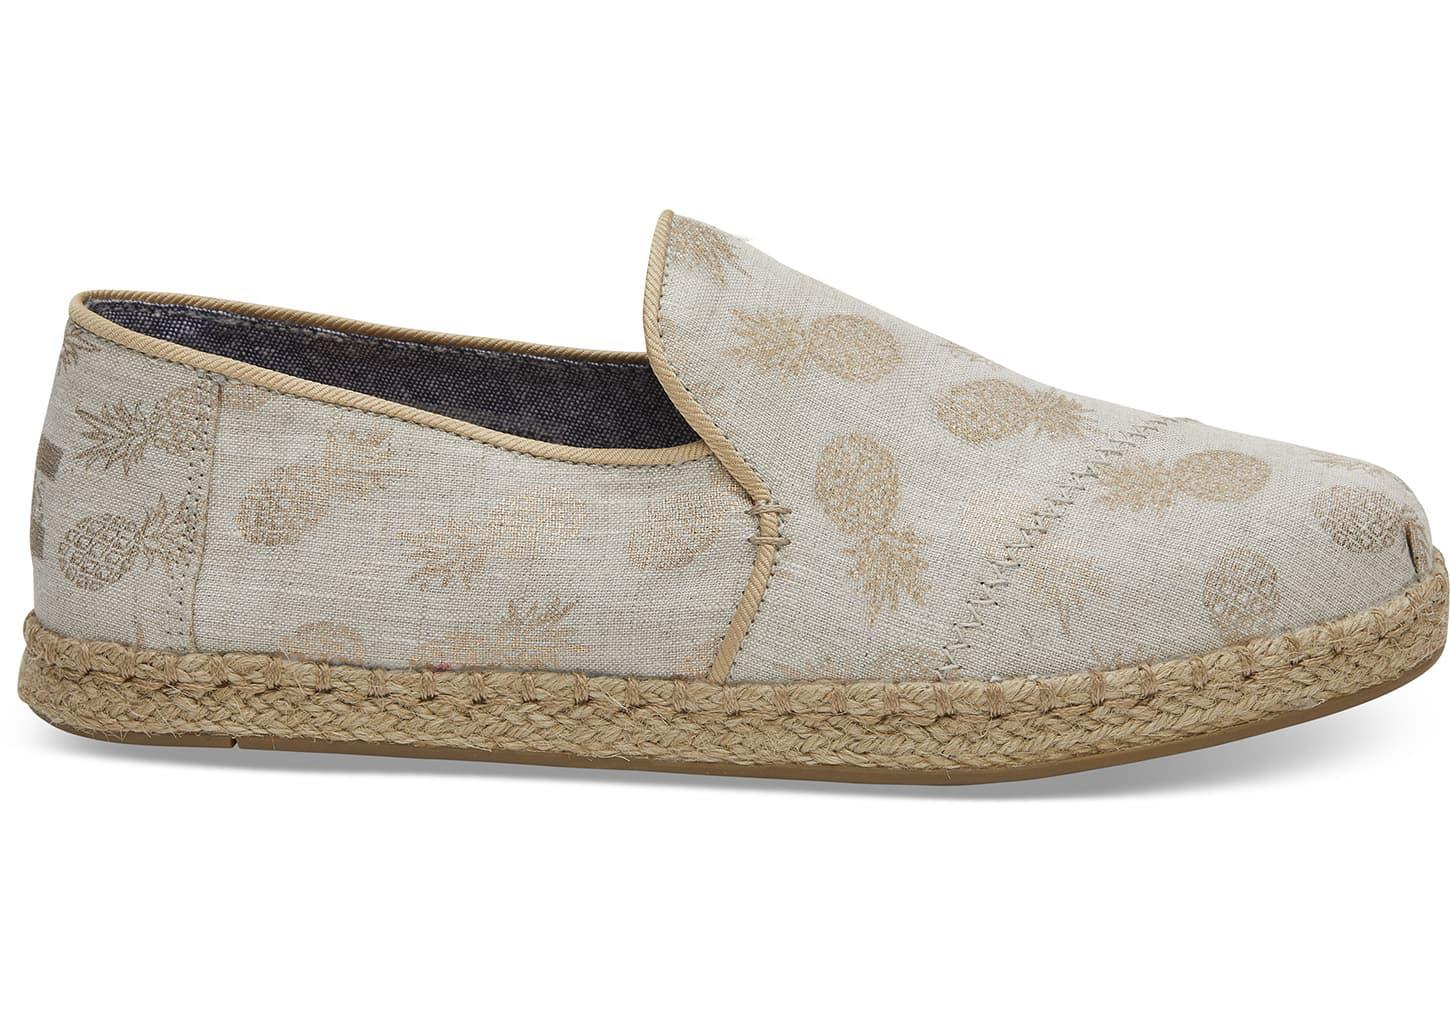 6d096a7ad84 Toms Gold Metallic Pineapples Women s Deconstructed Alpargatas in ...